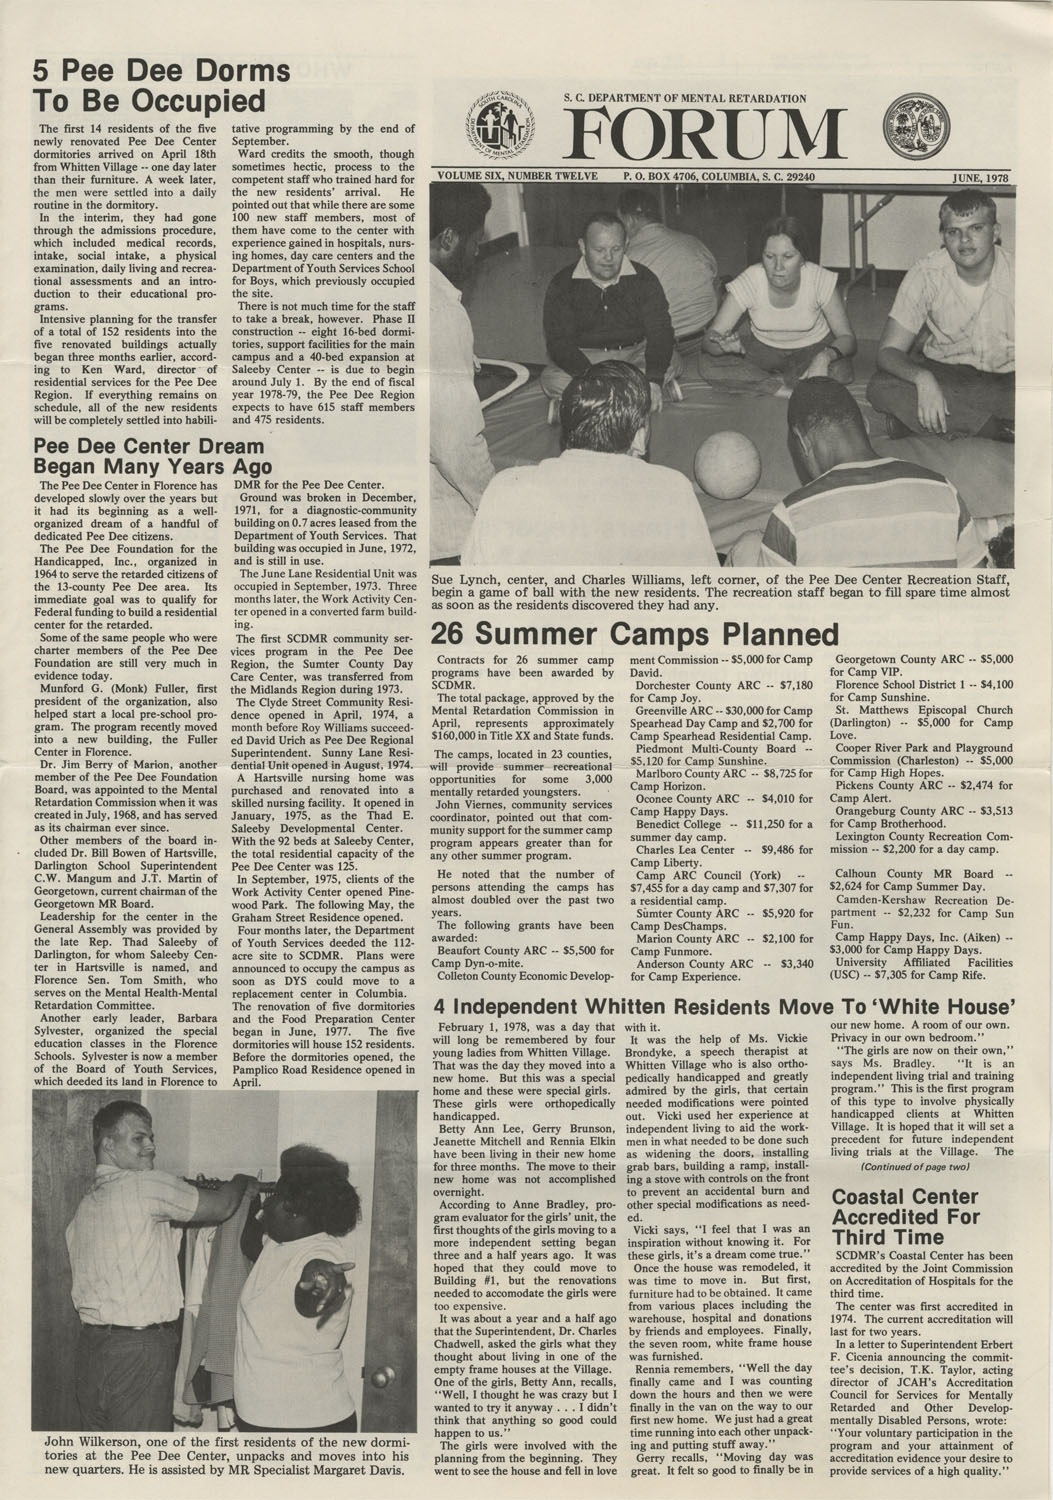 SCDMR Forum, South Carolina Department of Mental Retardation, June 1978